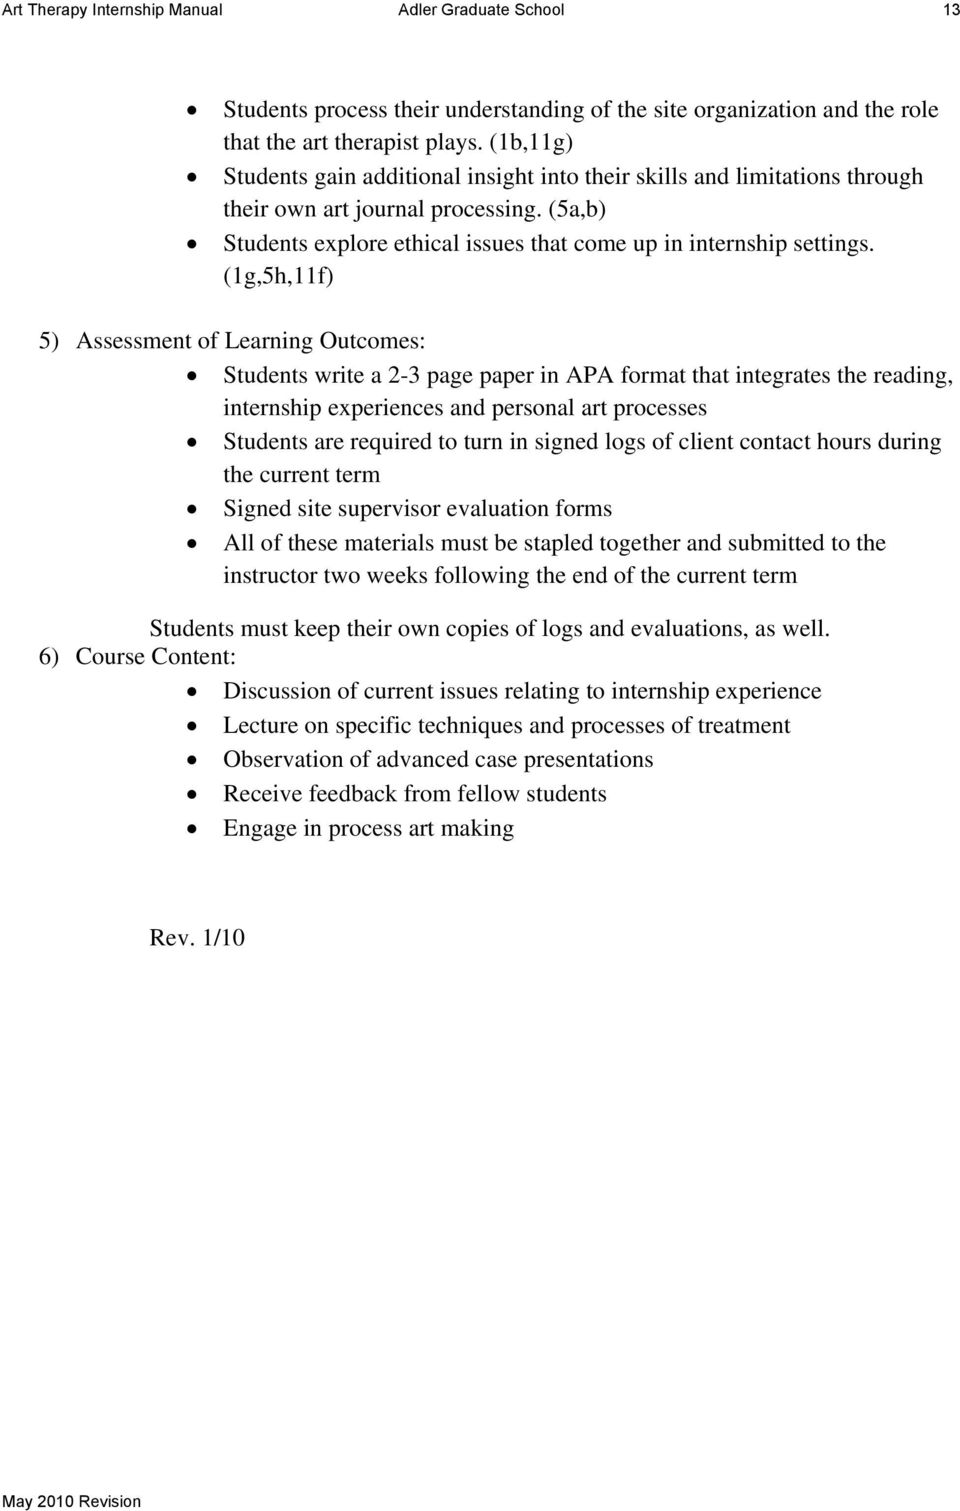 (1g,5h,11f) 5) Assessment of Learning Outcomes: Students write a 2-3 page paper in APA format that integrates the reading, internship experiences and personal art processes Students are required to